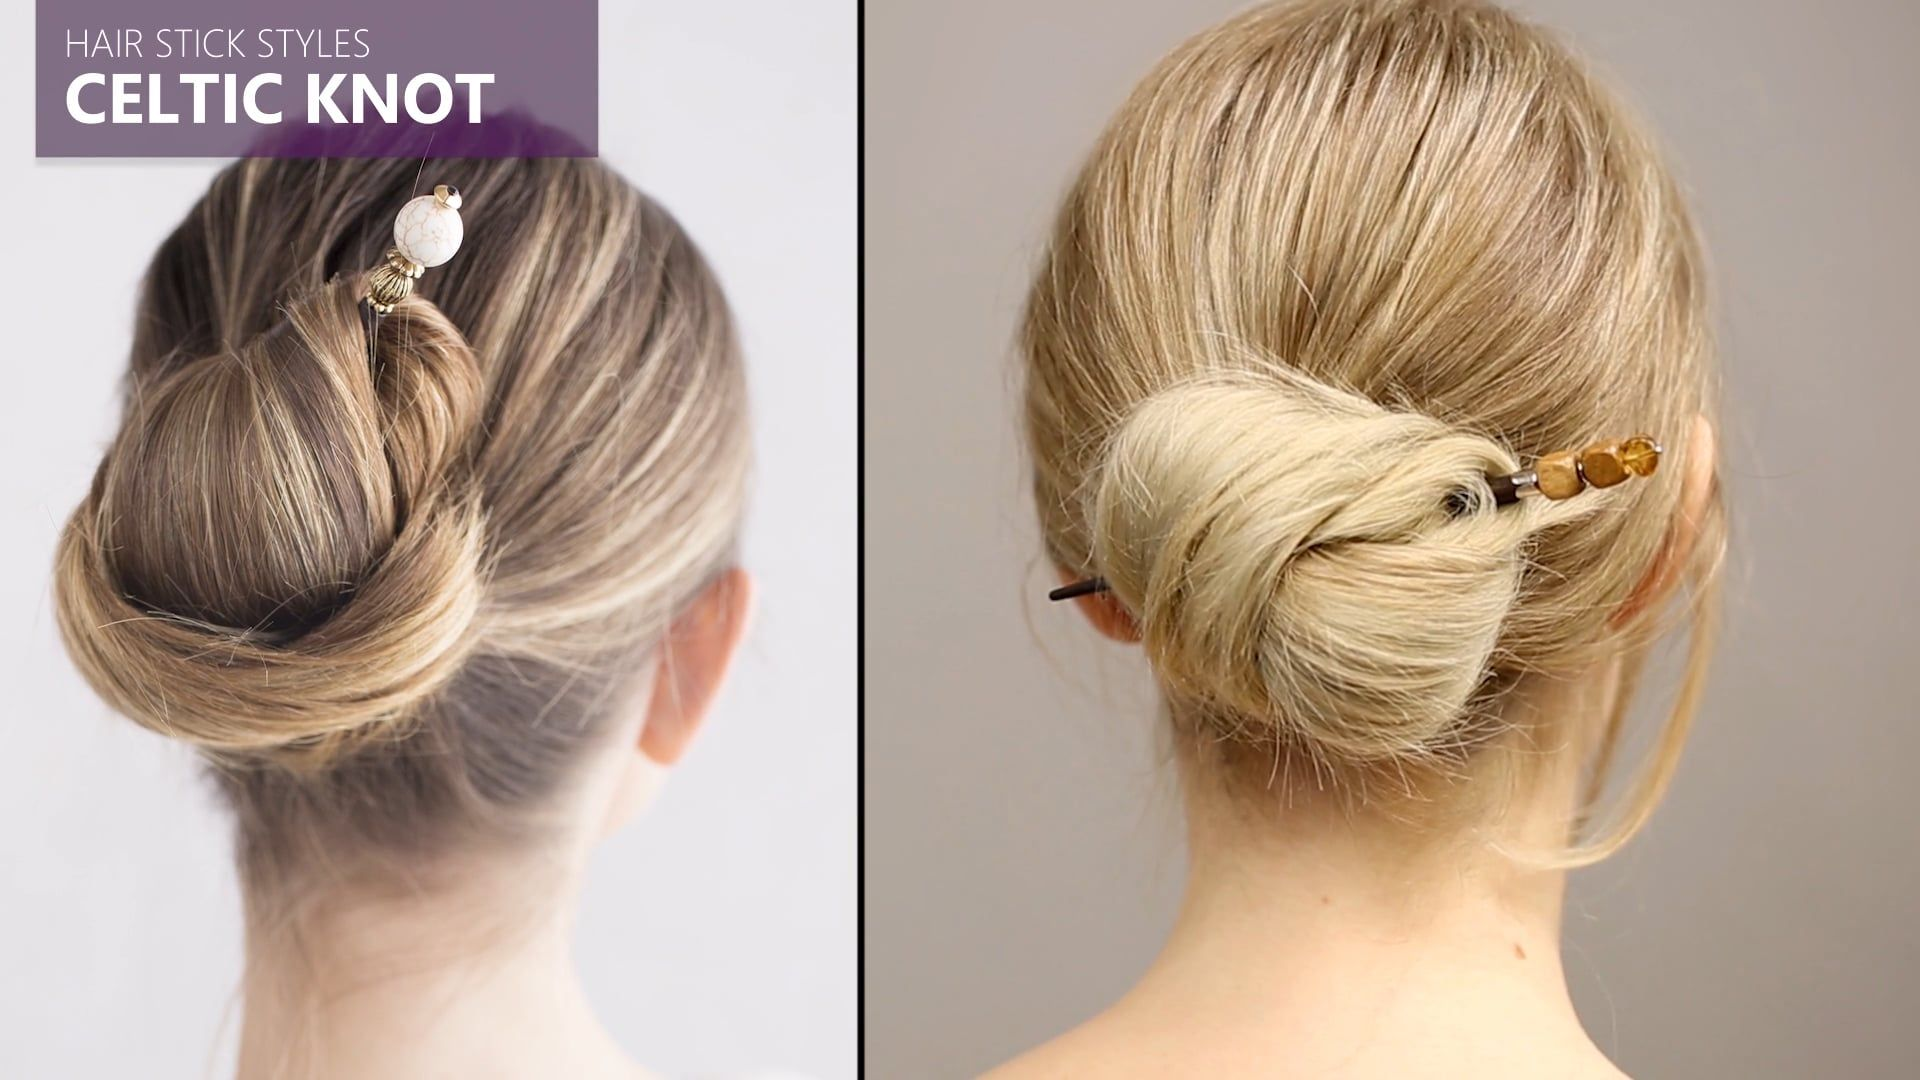 Celtic Knot Bun Hairstyle Video Tutorial Using A Designer Hair Stick From Lilla Rose Hairhowto Easyhairstyles Hairvi Hair Videos Bun Hairstyles Hair Sticks